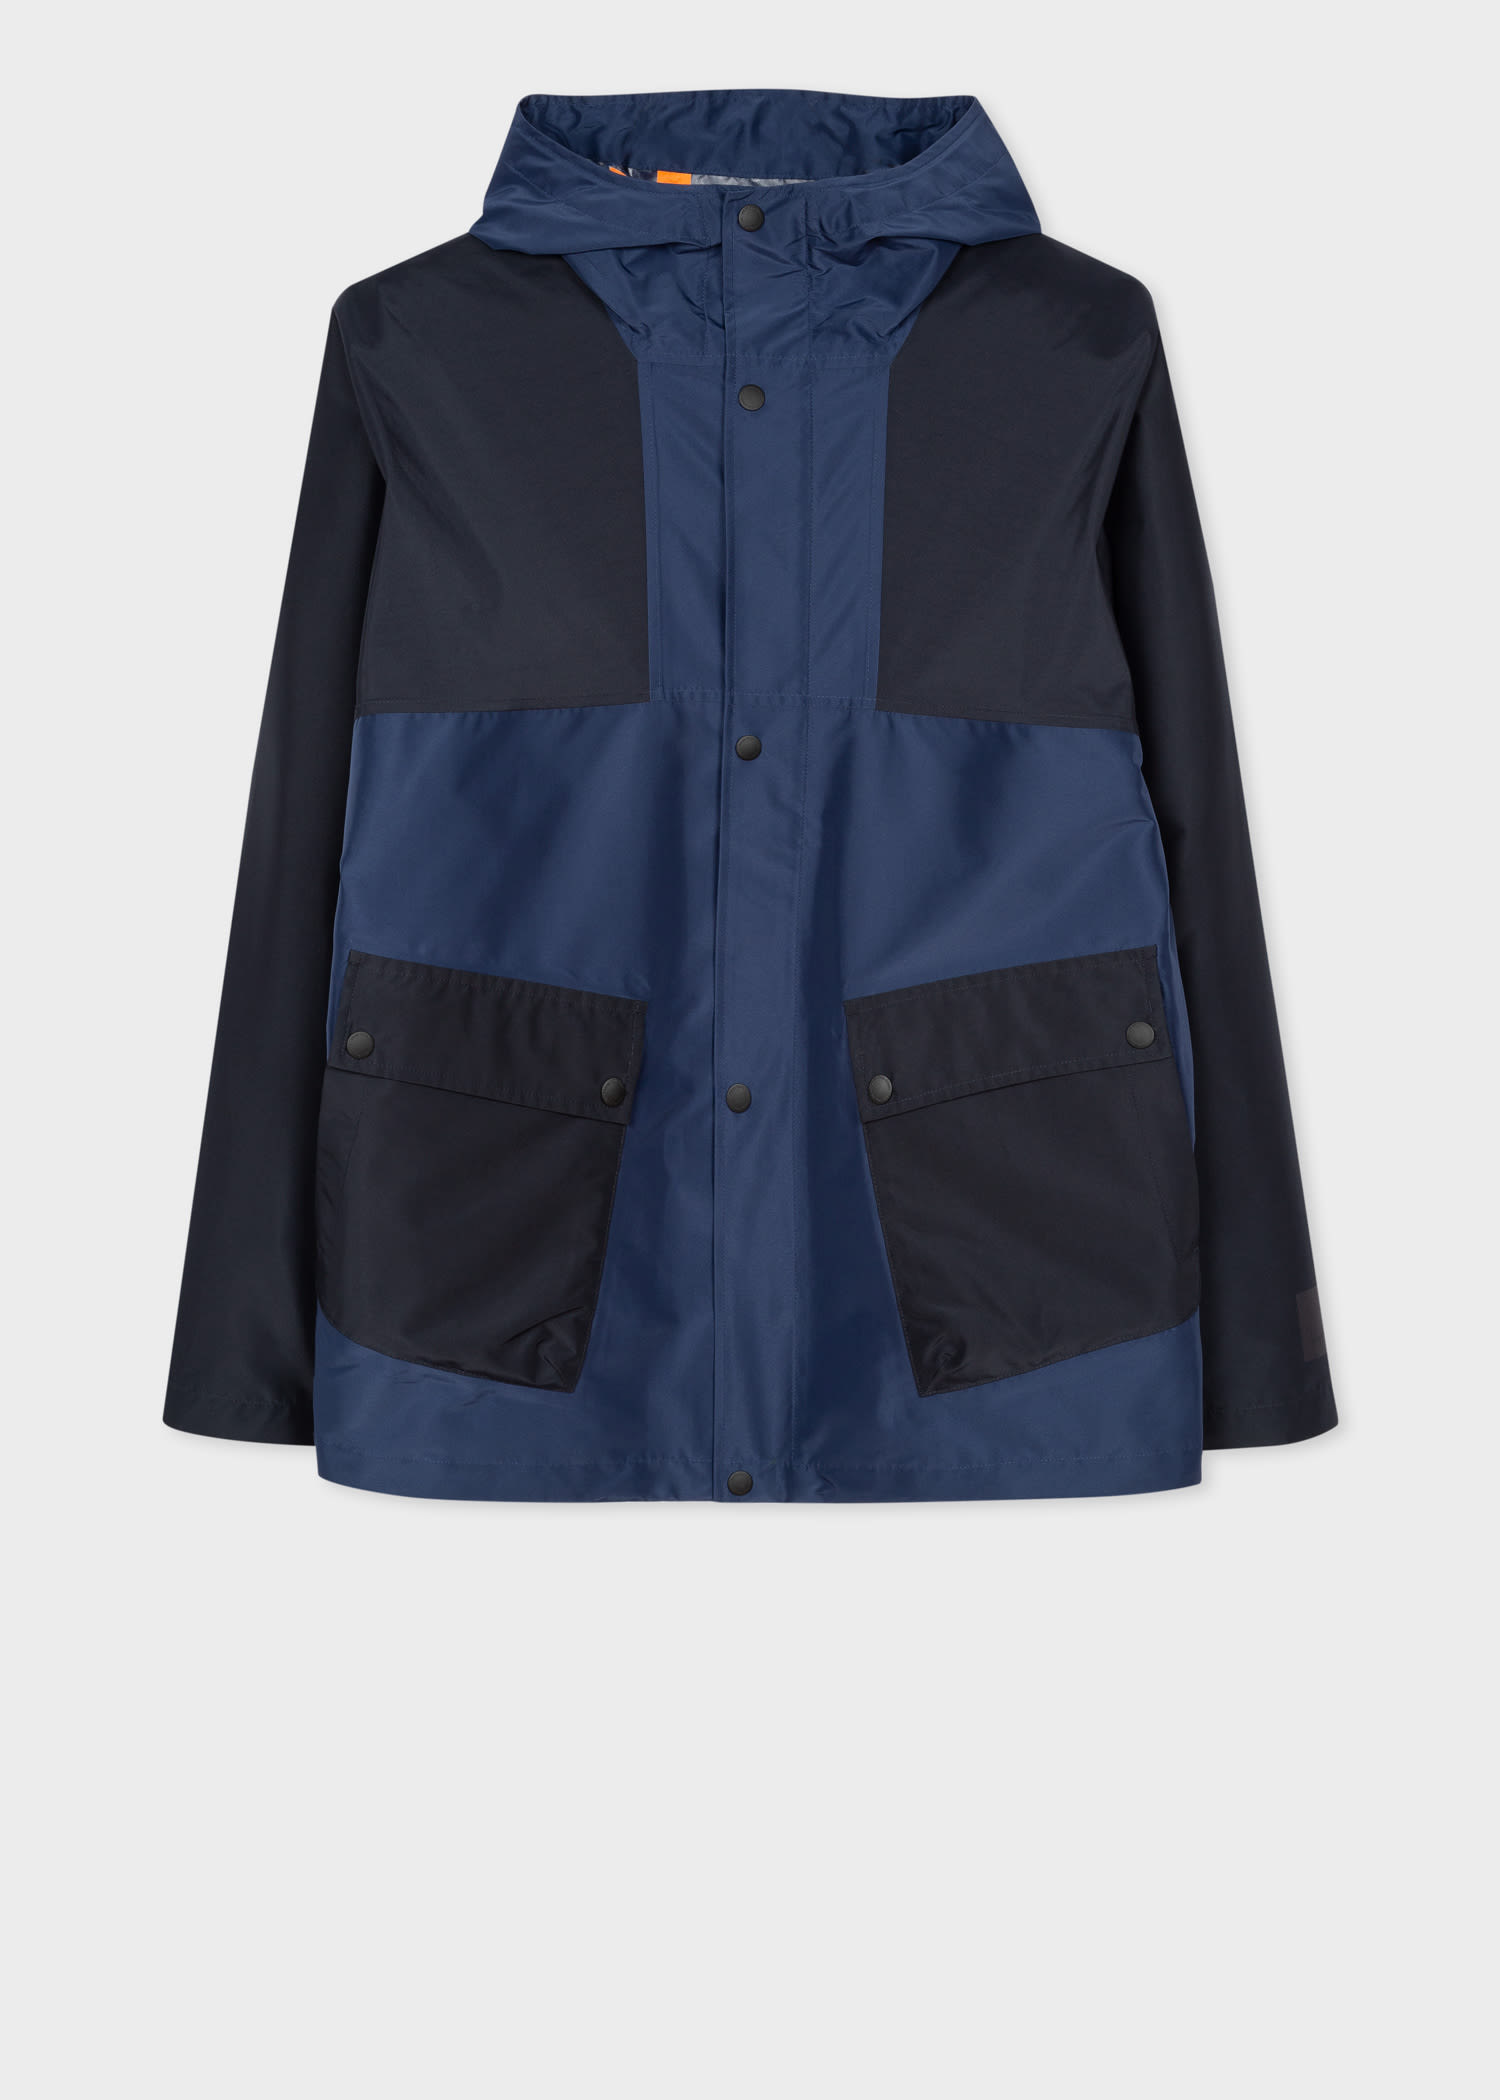 Men S Navy Recycled Polyester Waterproof Jacket By Ps Paul Smith Thread Com